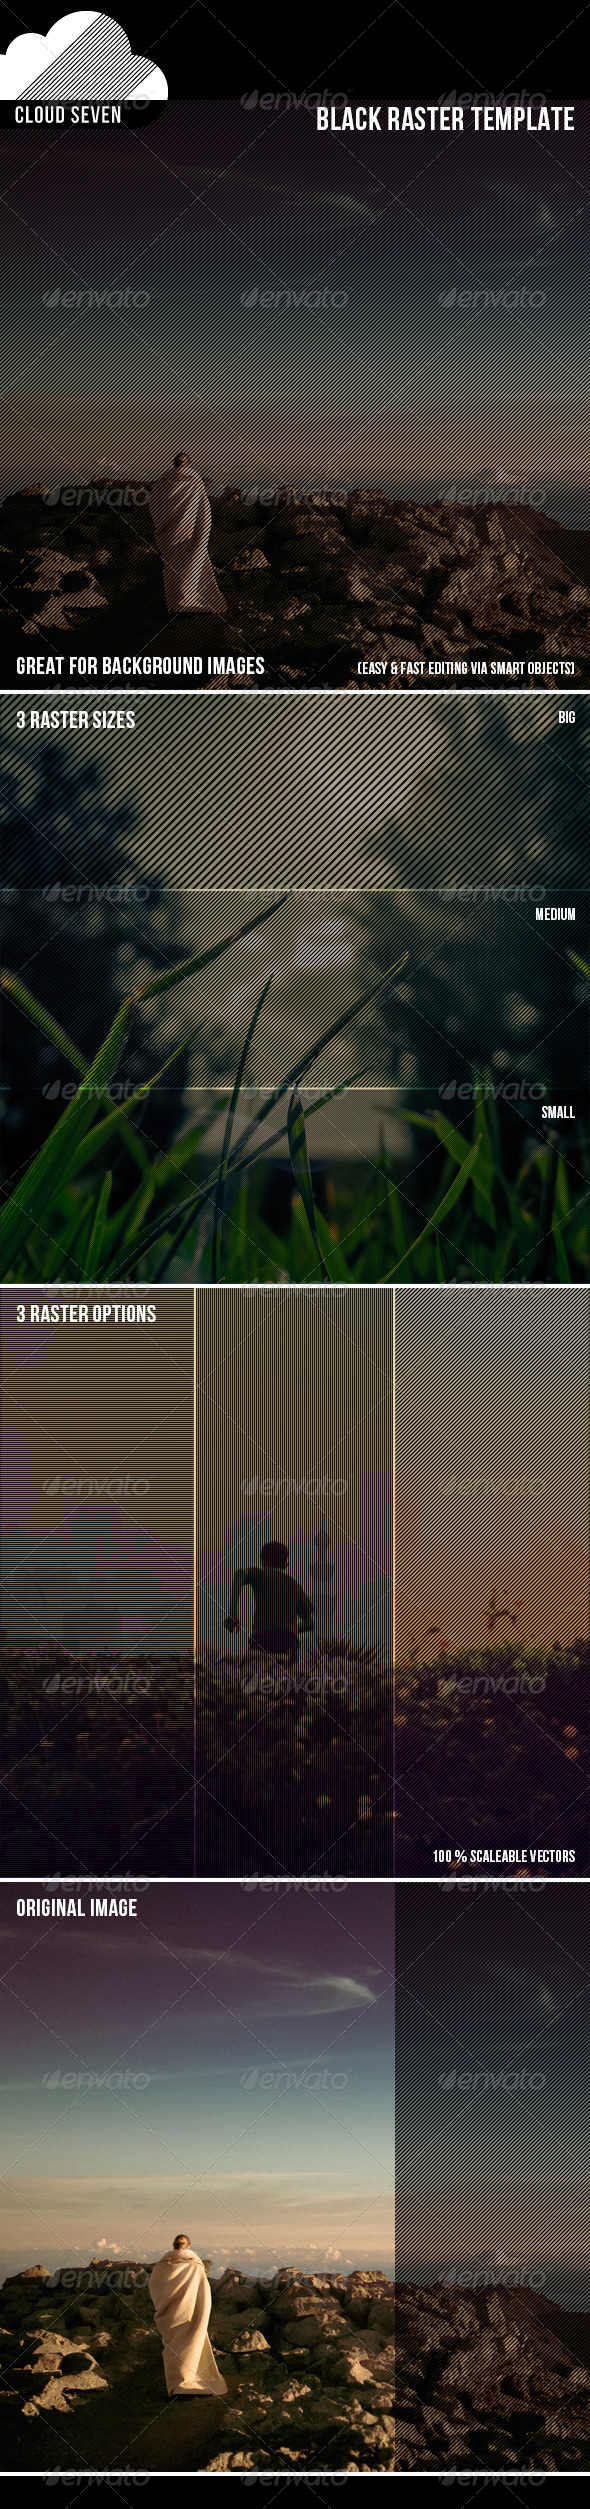 GraphicRiver Black Raster Template 7692942